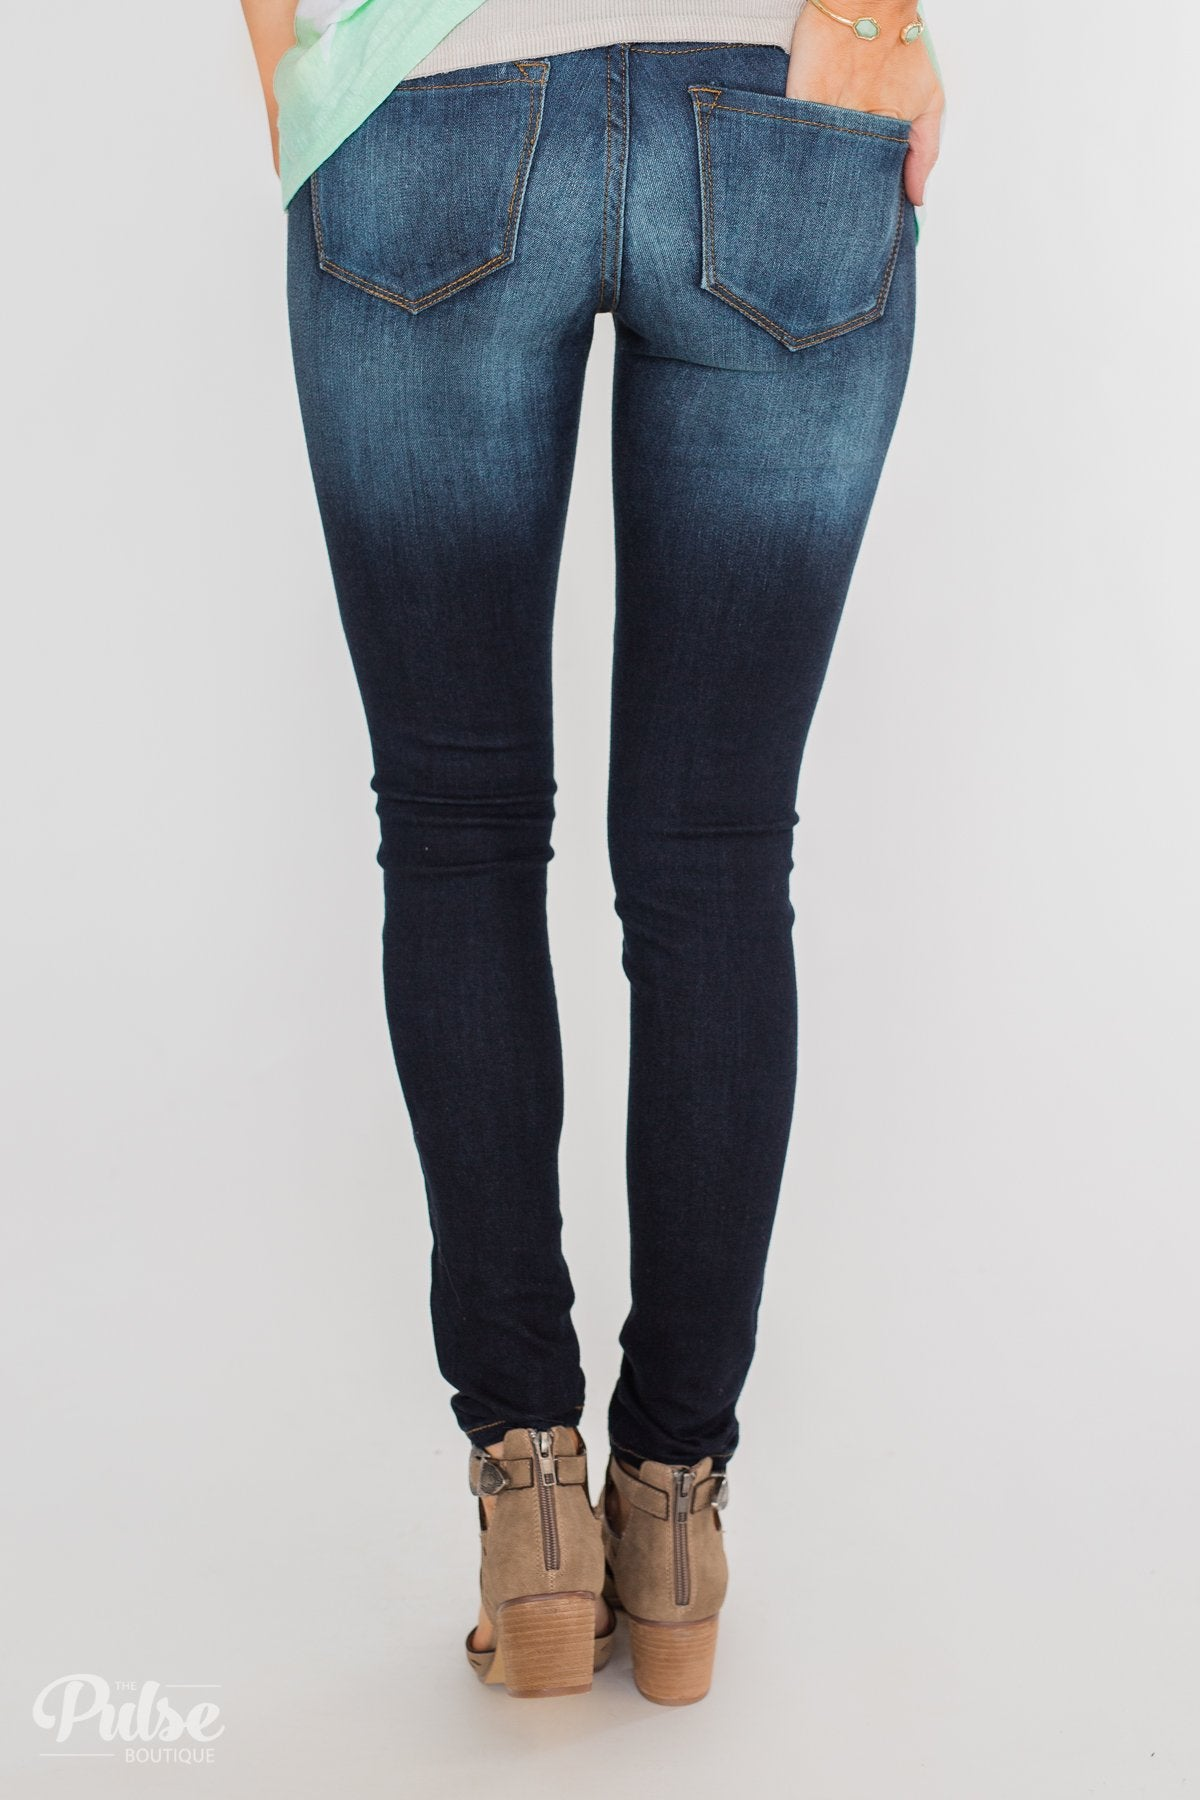 Kan Can Non-Distressed Jeans- Alicia Wash